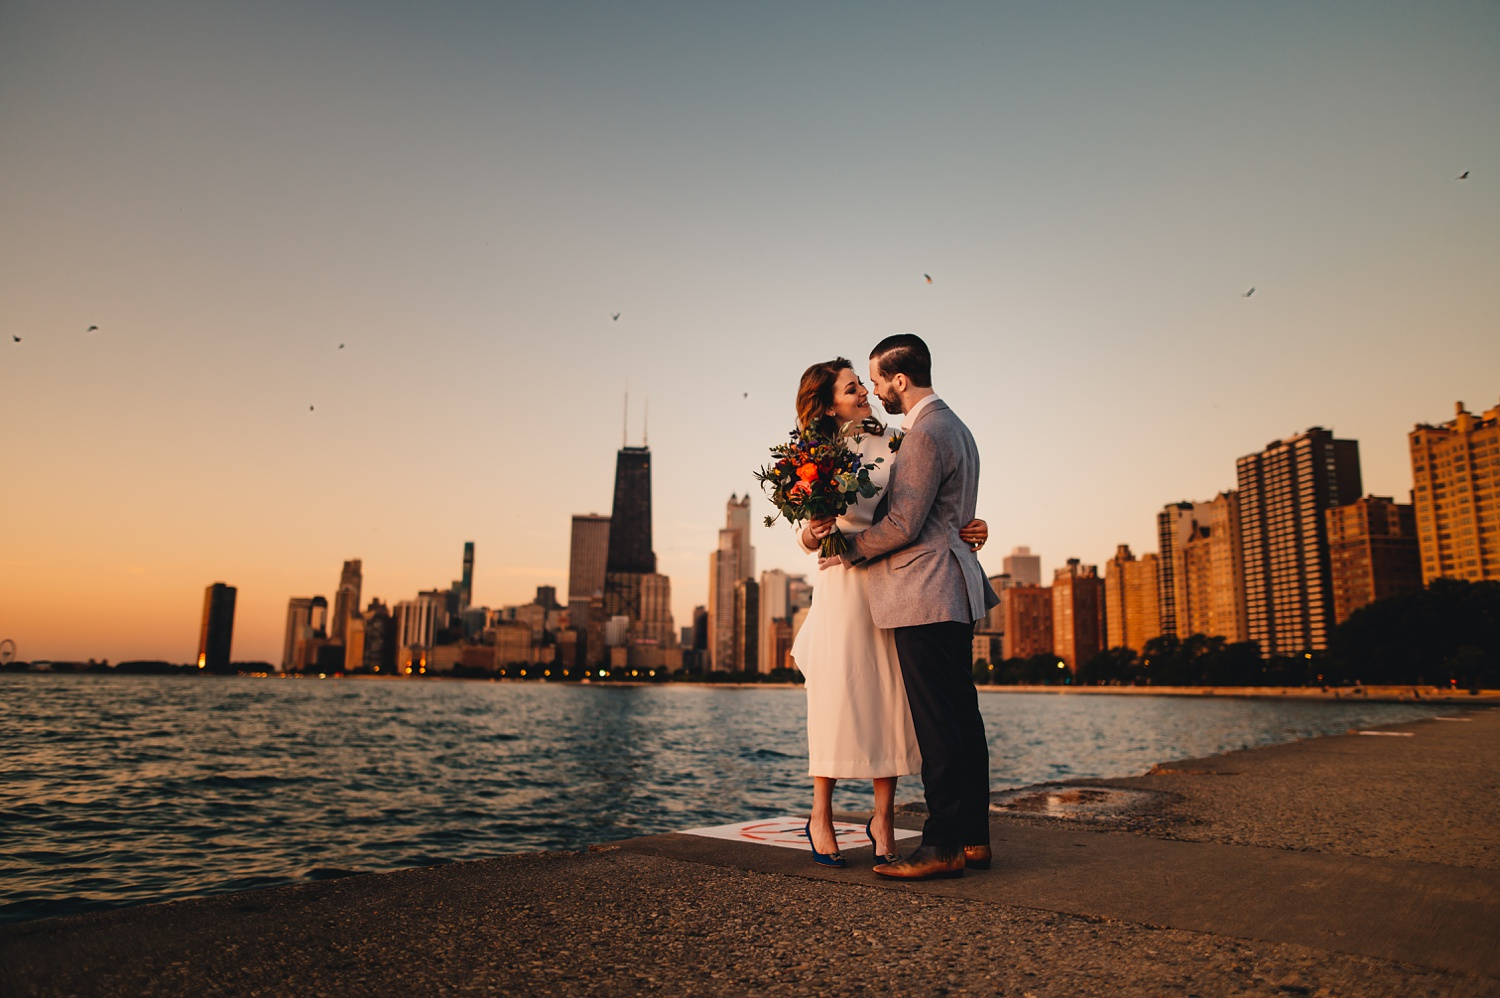 Sunrise Chicago Wedding - The Adamkovi, bride and groom creative portraits, Chicago Skyline, north avenue beach